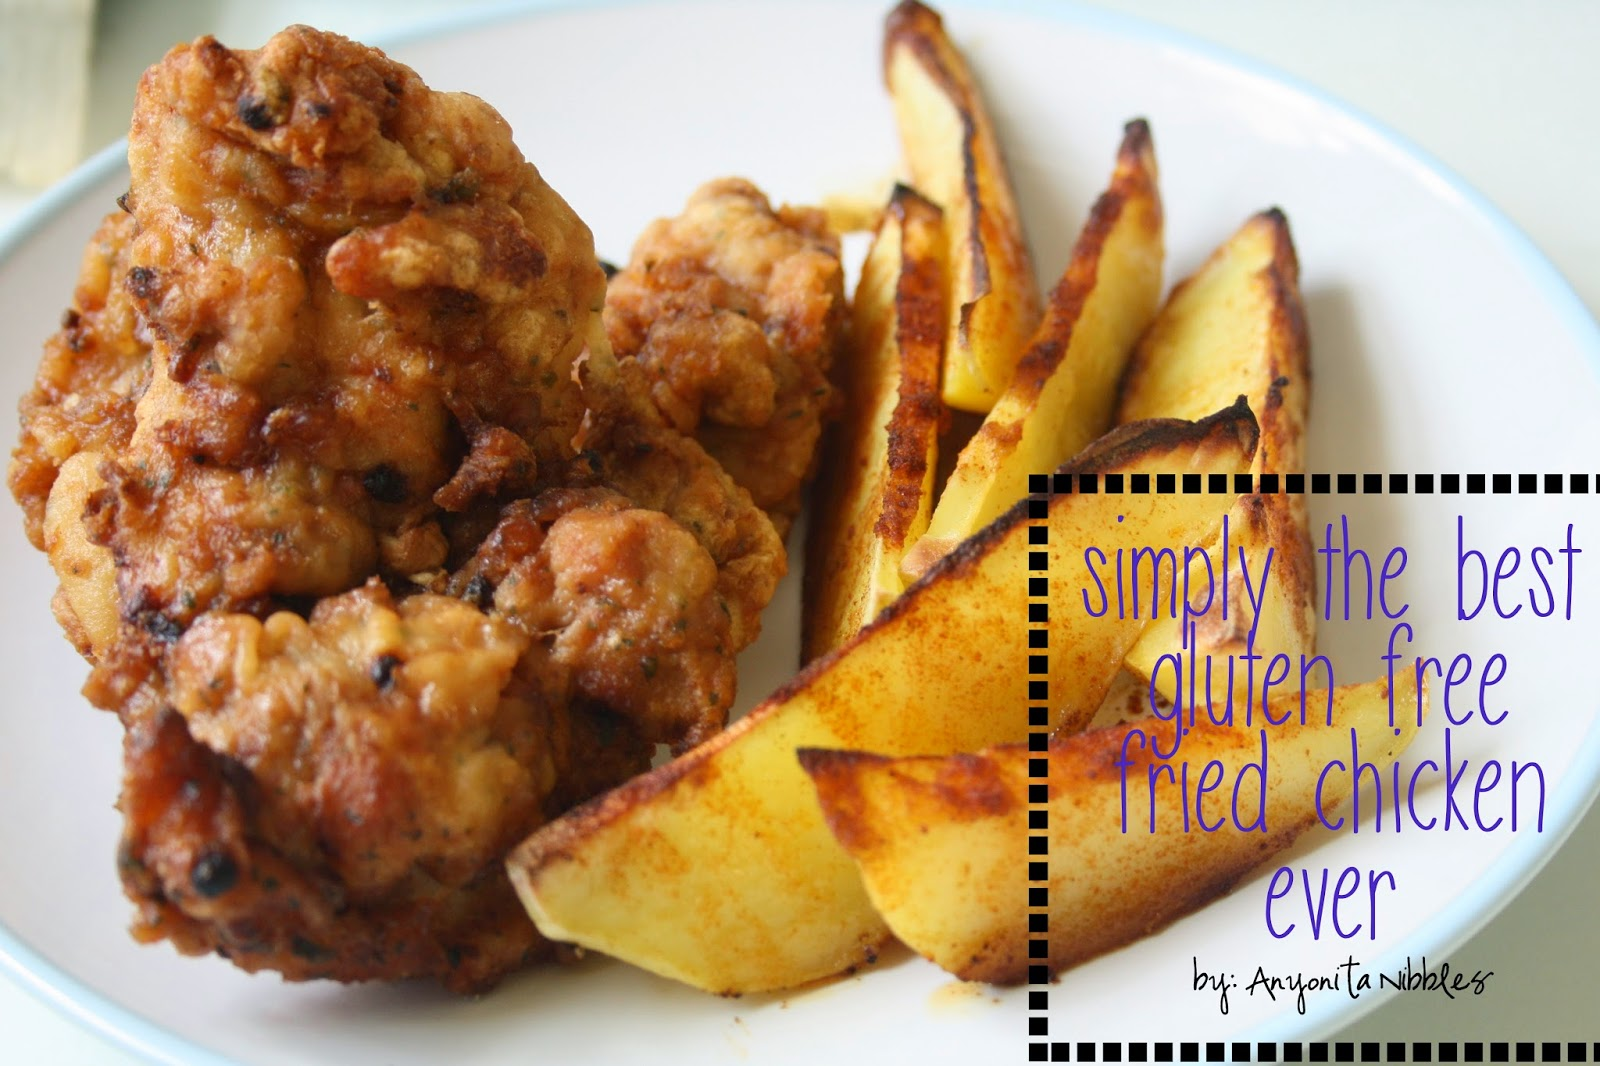 This gluten free and paleo fried chicken is simply the best you'll taste. From Anyonita Nibbles